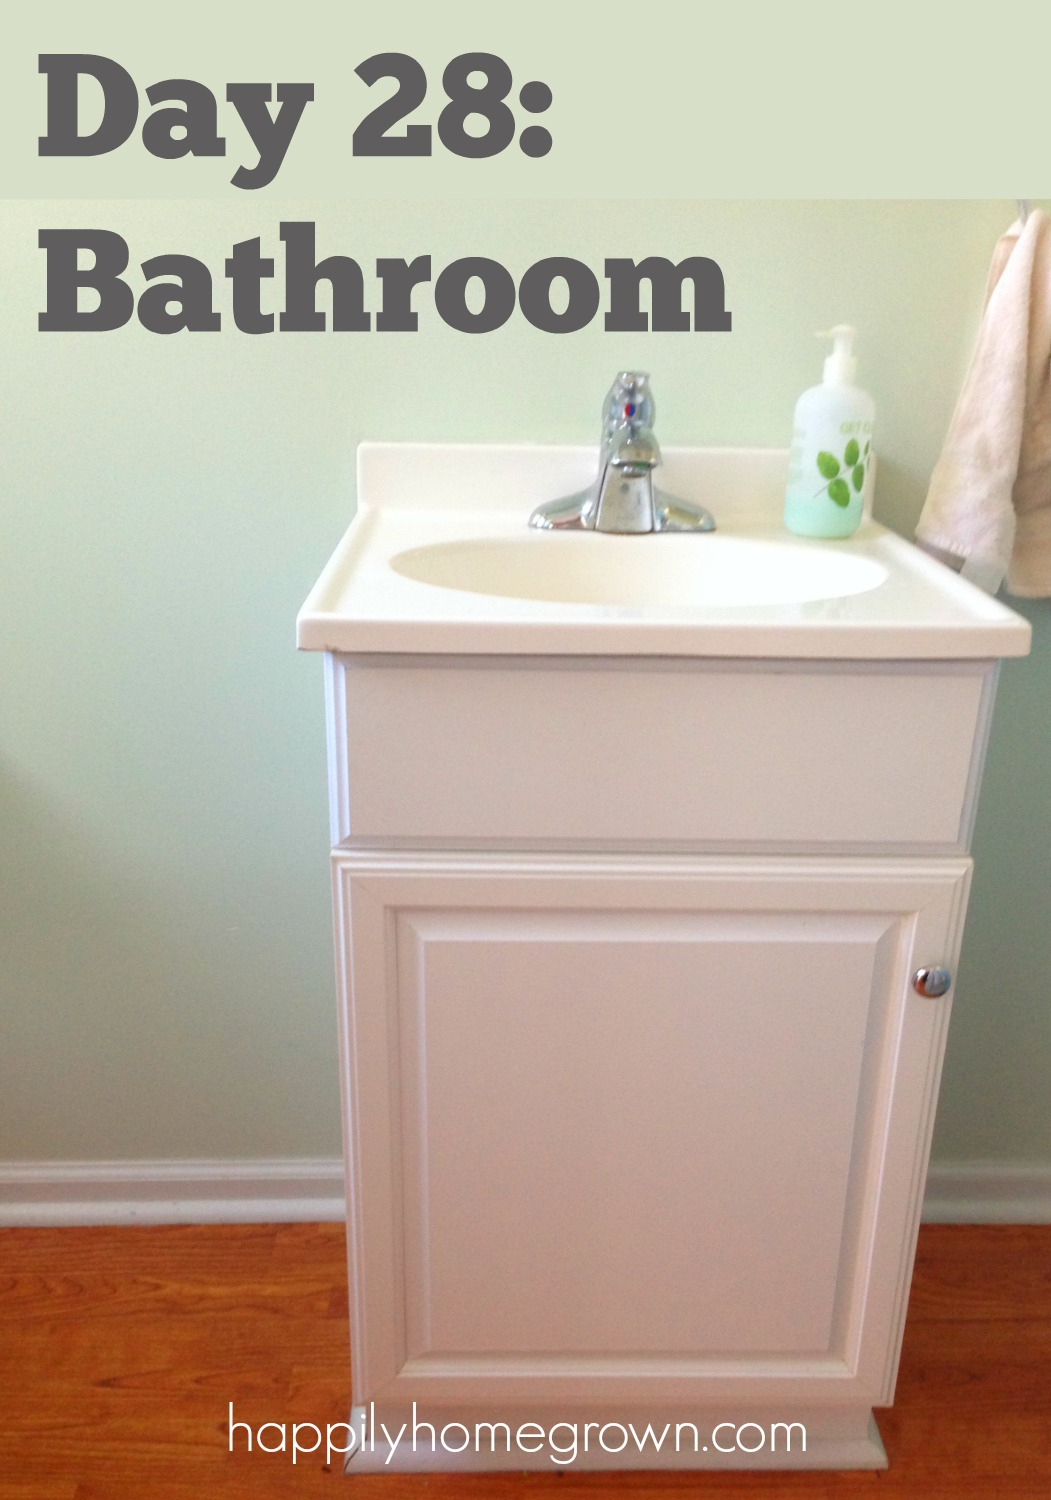 Having a bathroom cleaning schedule has changed our life. The bathroom is always clean, my children know what their chores are, and it never is an overwhelming task.